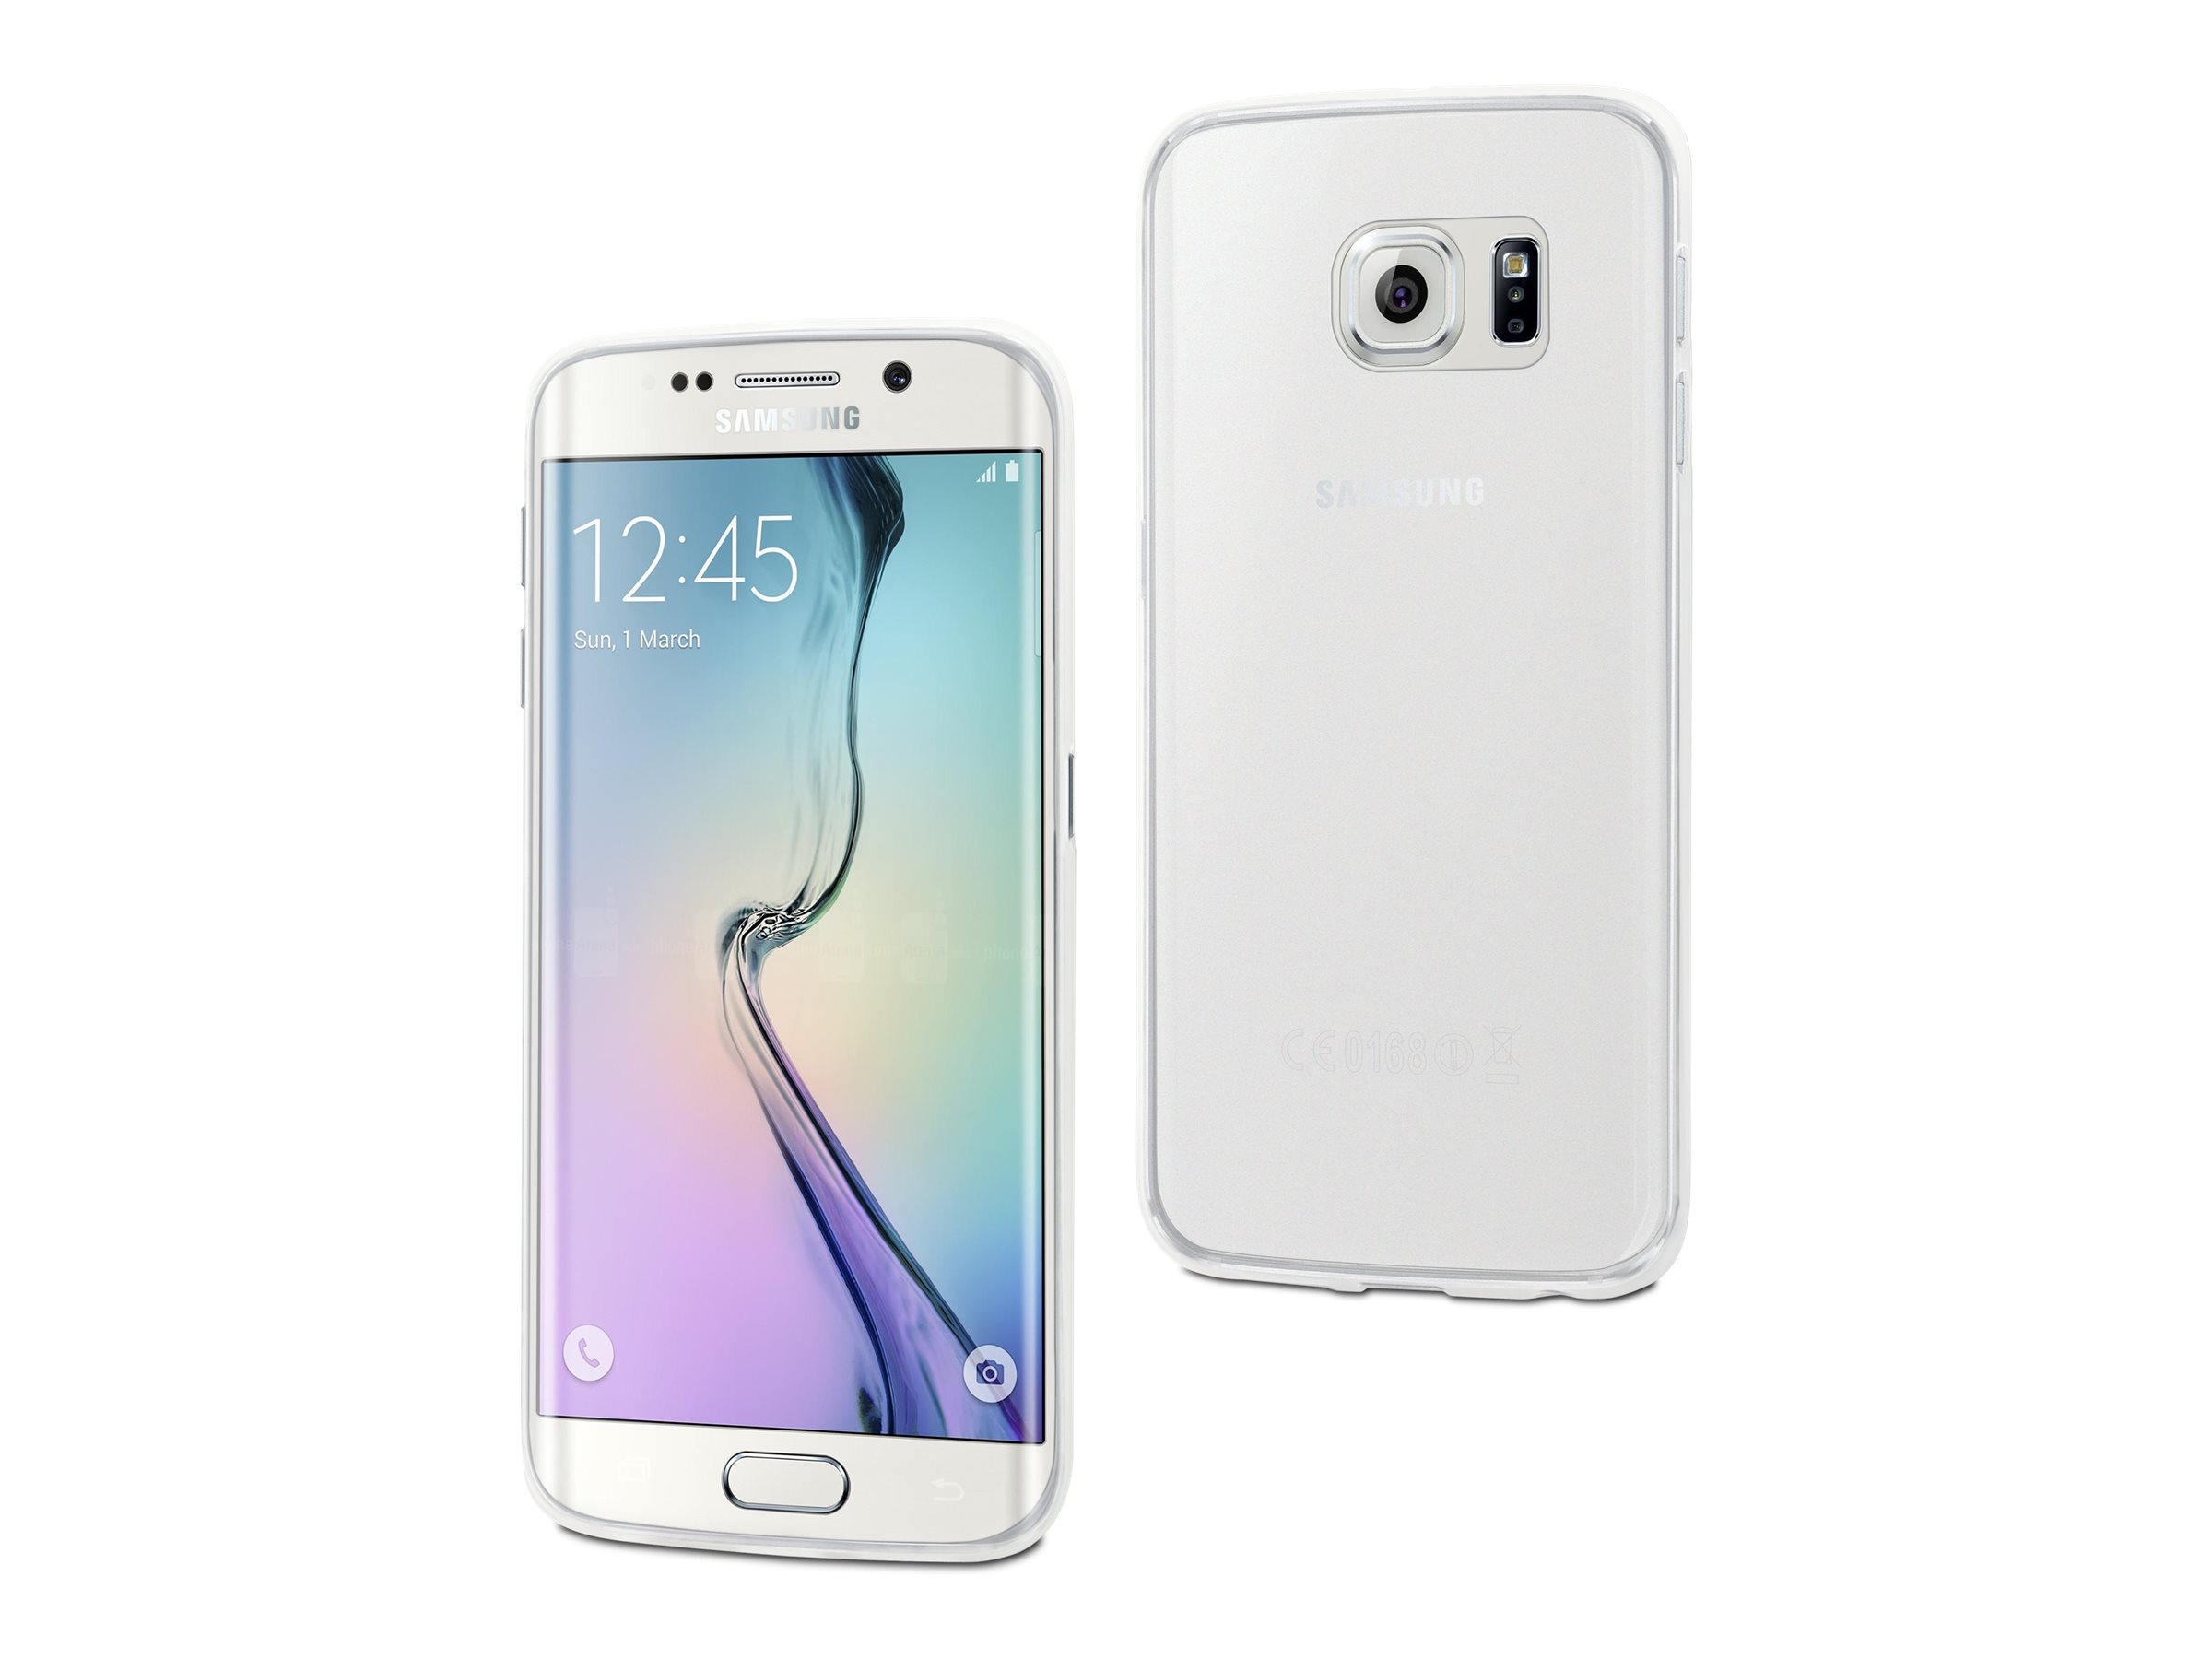 Muvit thingel - Coque de protection pour Samsung Galaxy S6 edge+ - incolore